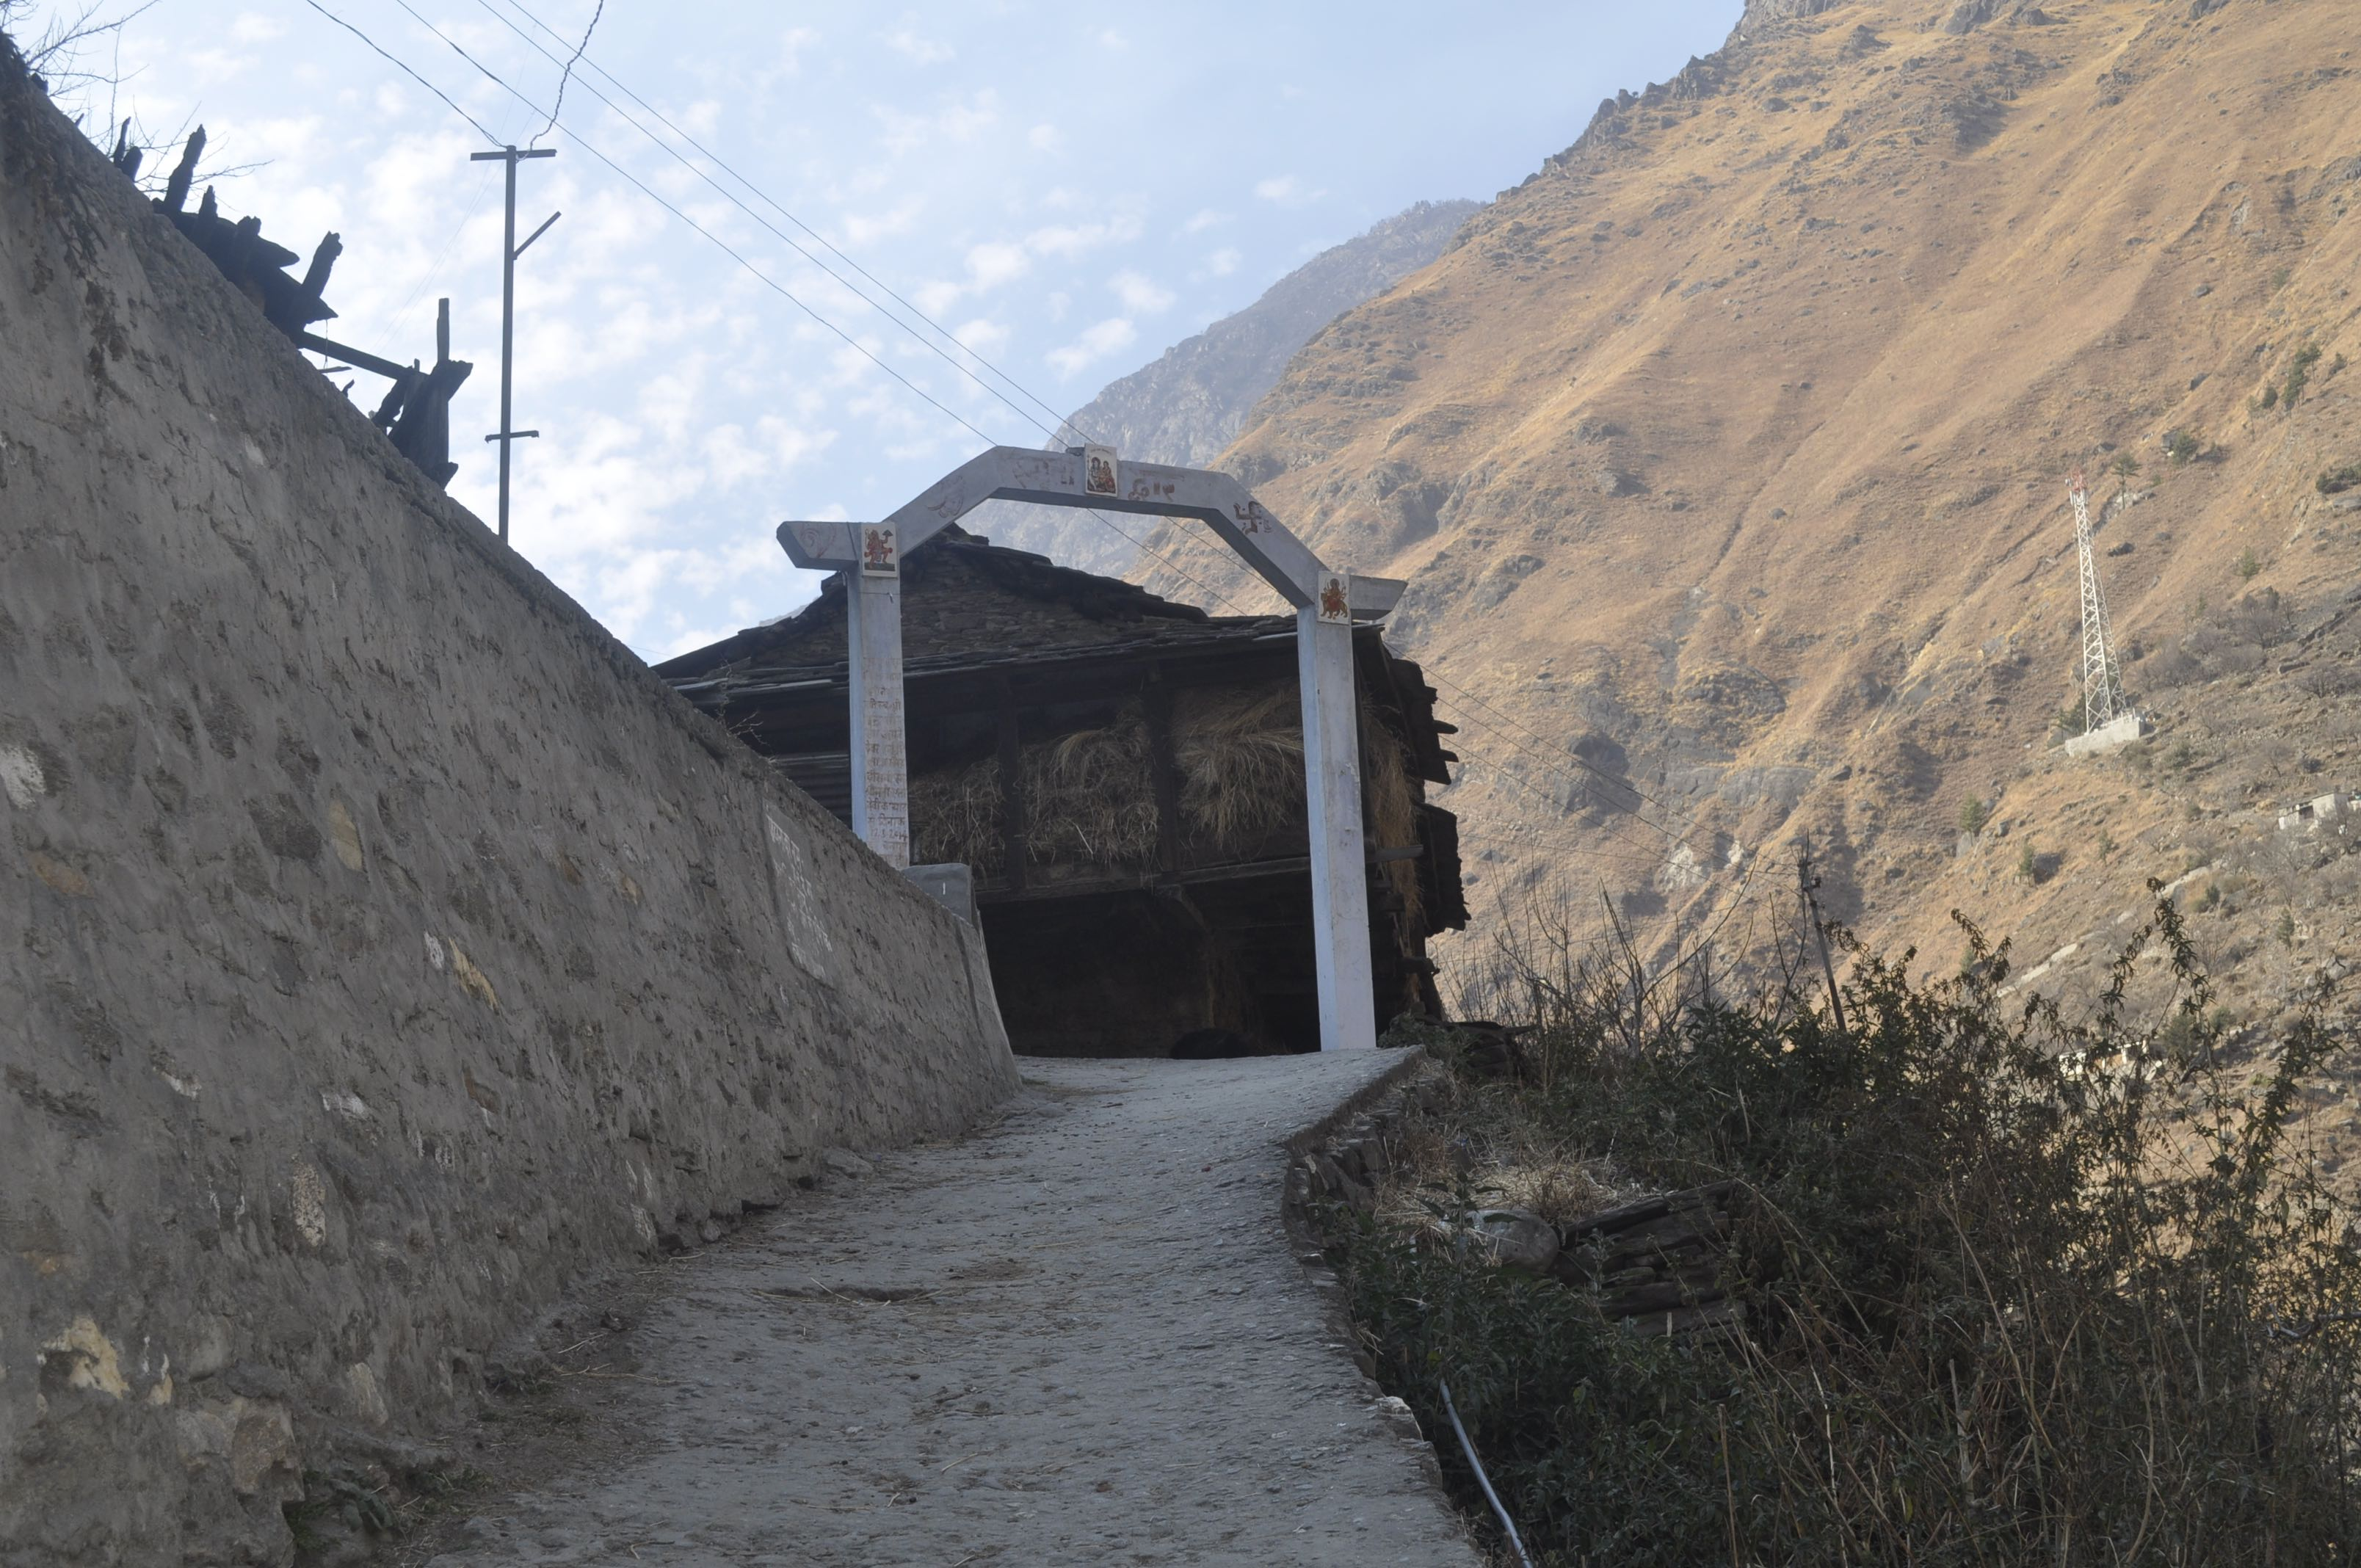 Memorial and entry point to Raini Village -- Nanda Devi Biosphere